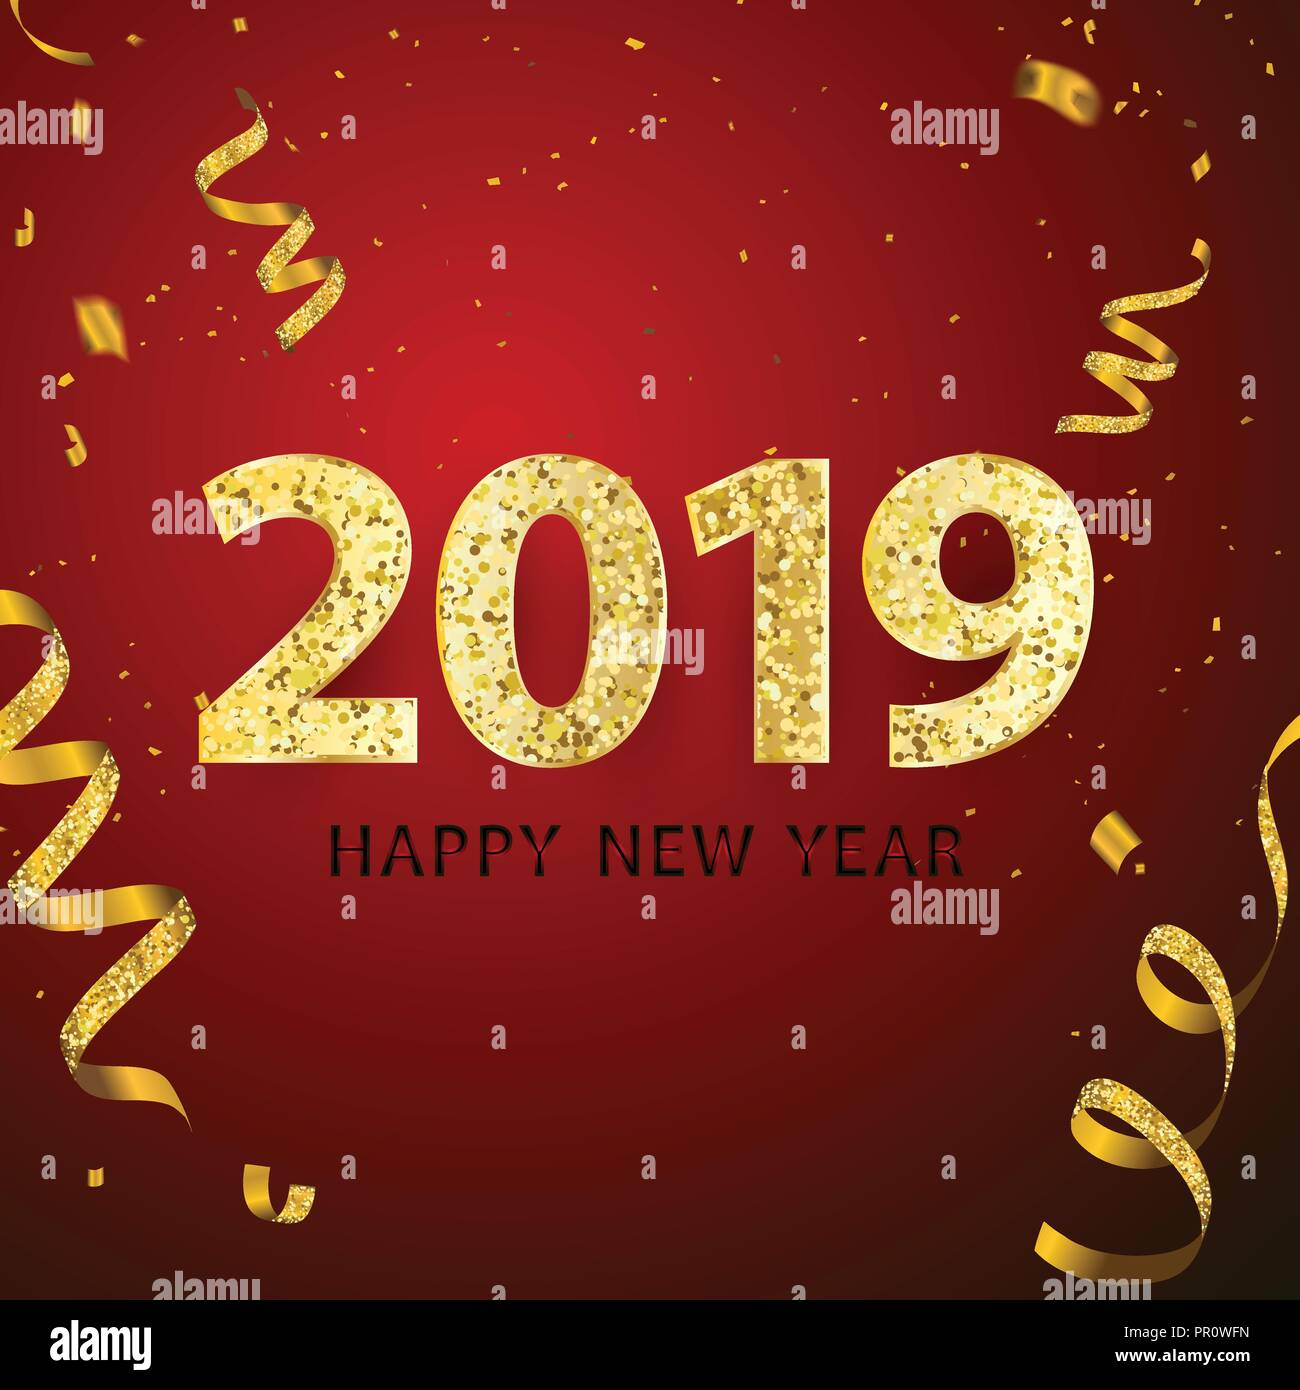 happy new year 2018 background greeting card design template gold confetti celebrate brochure or flyer